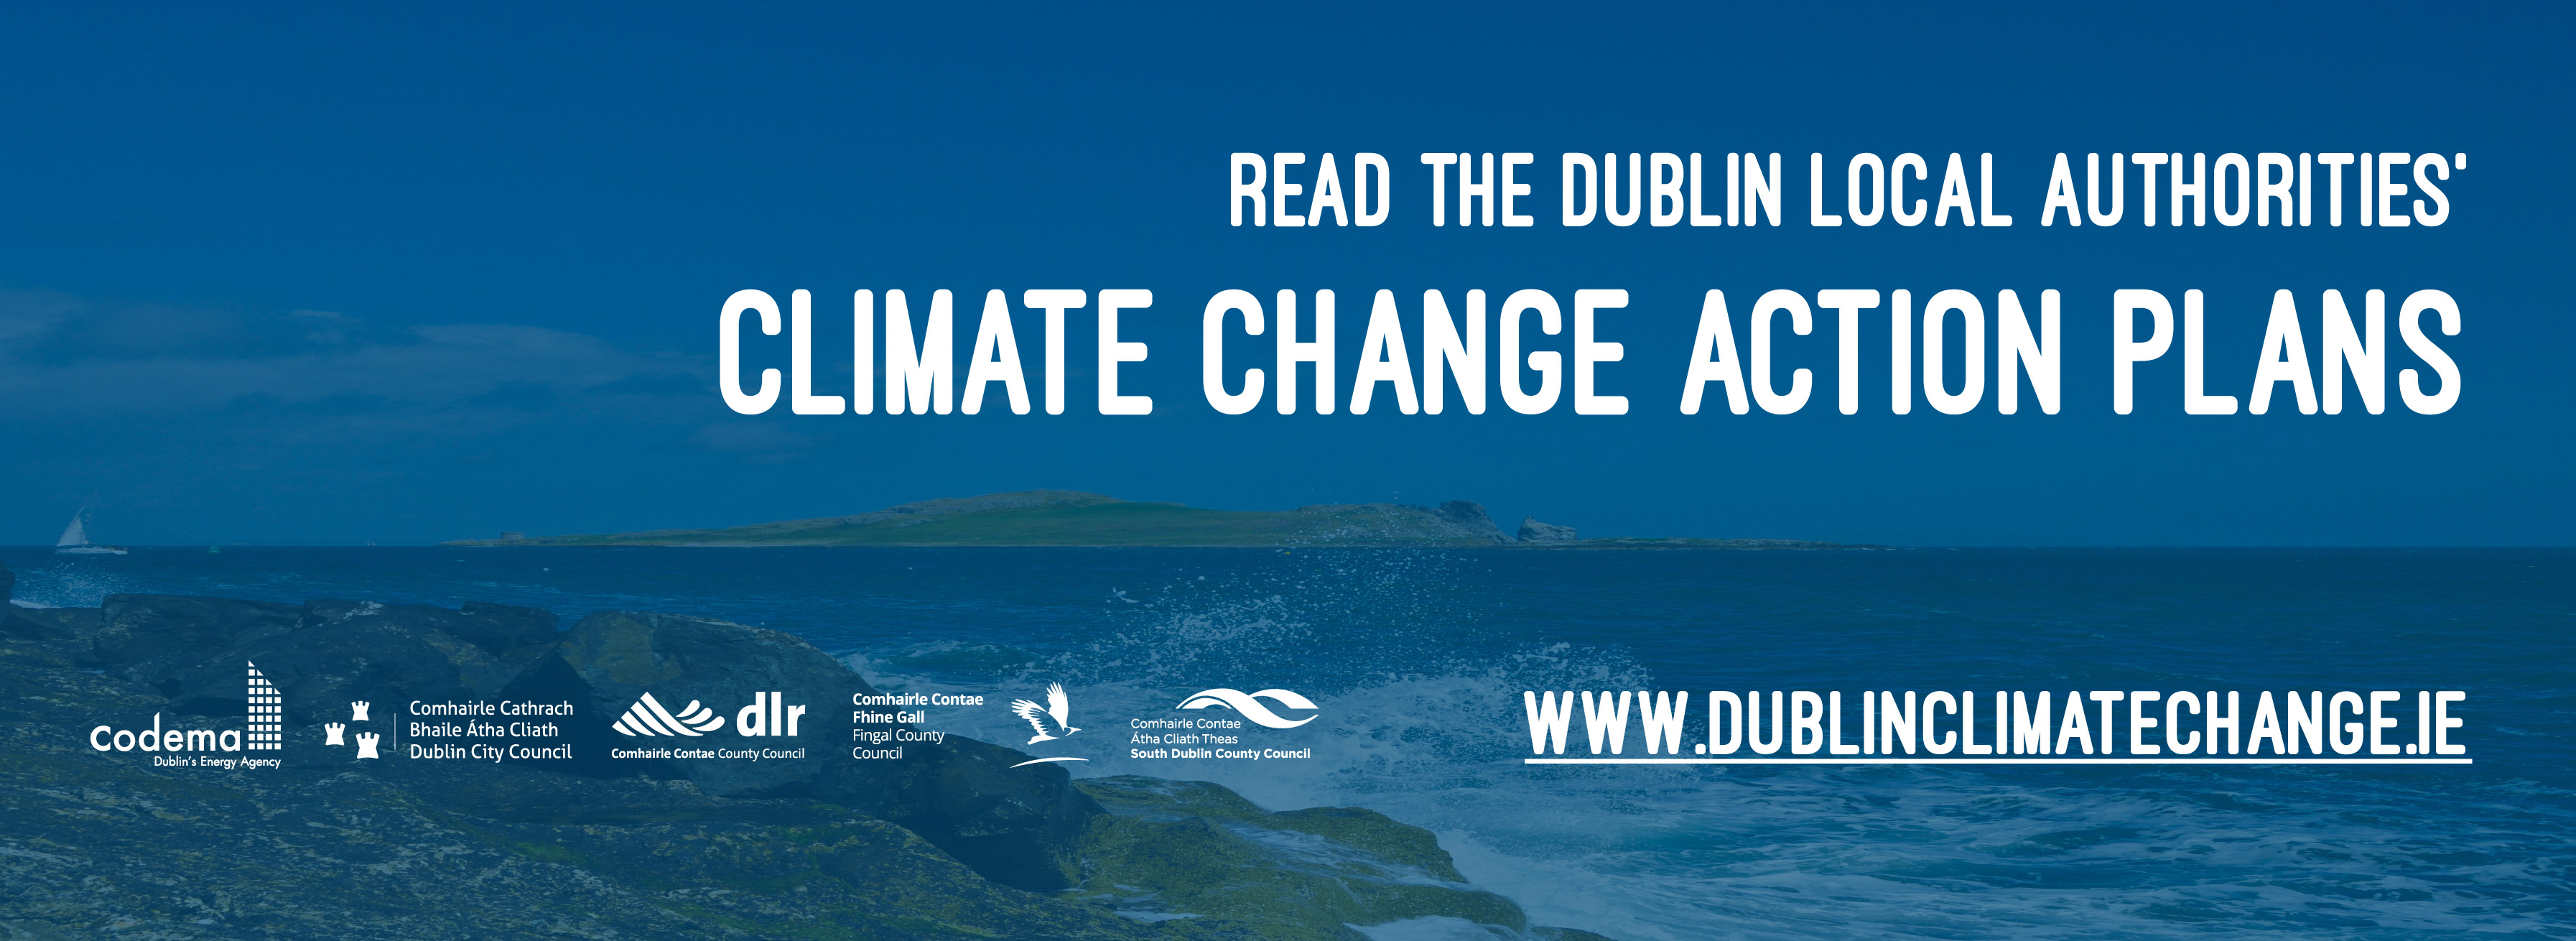 Read the Dublin Local Authority Climate Change Action Plans